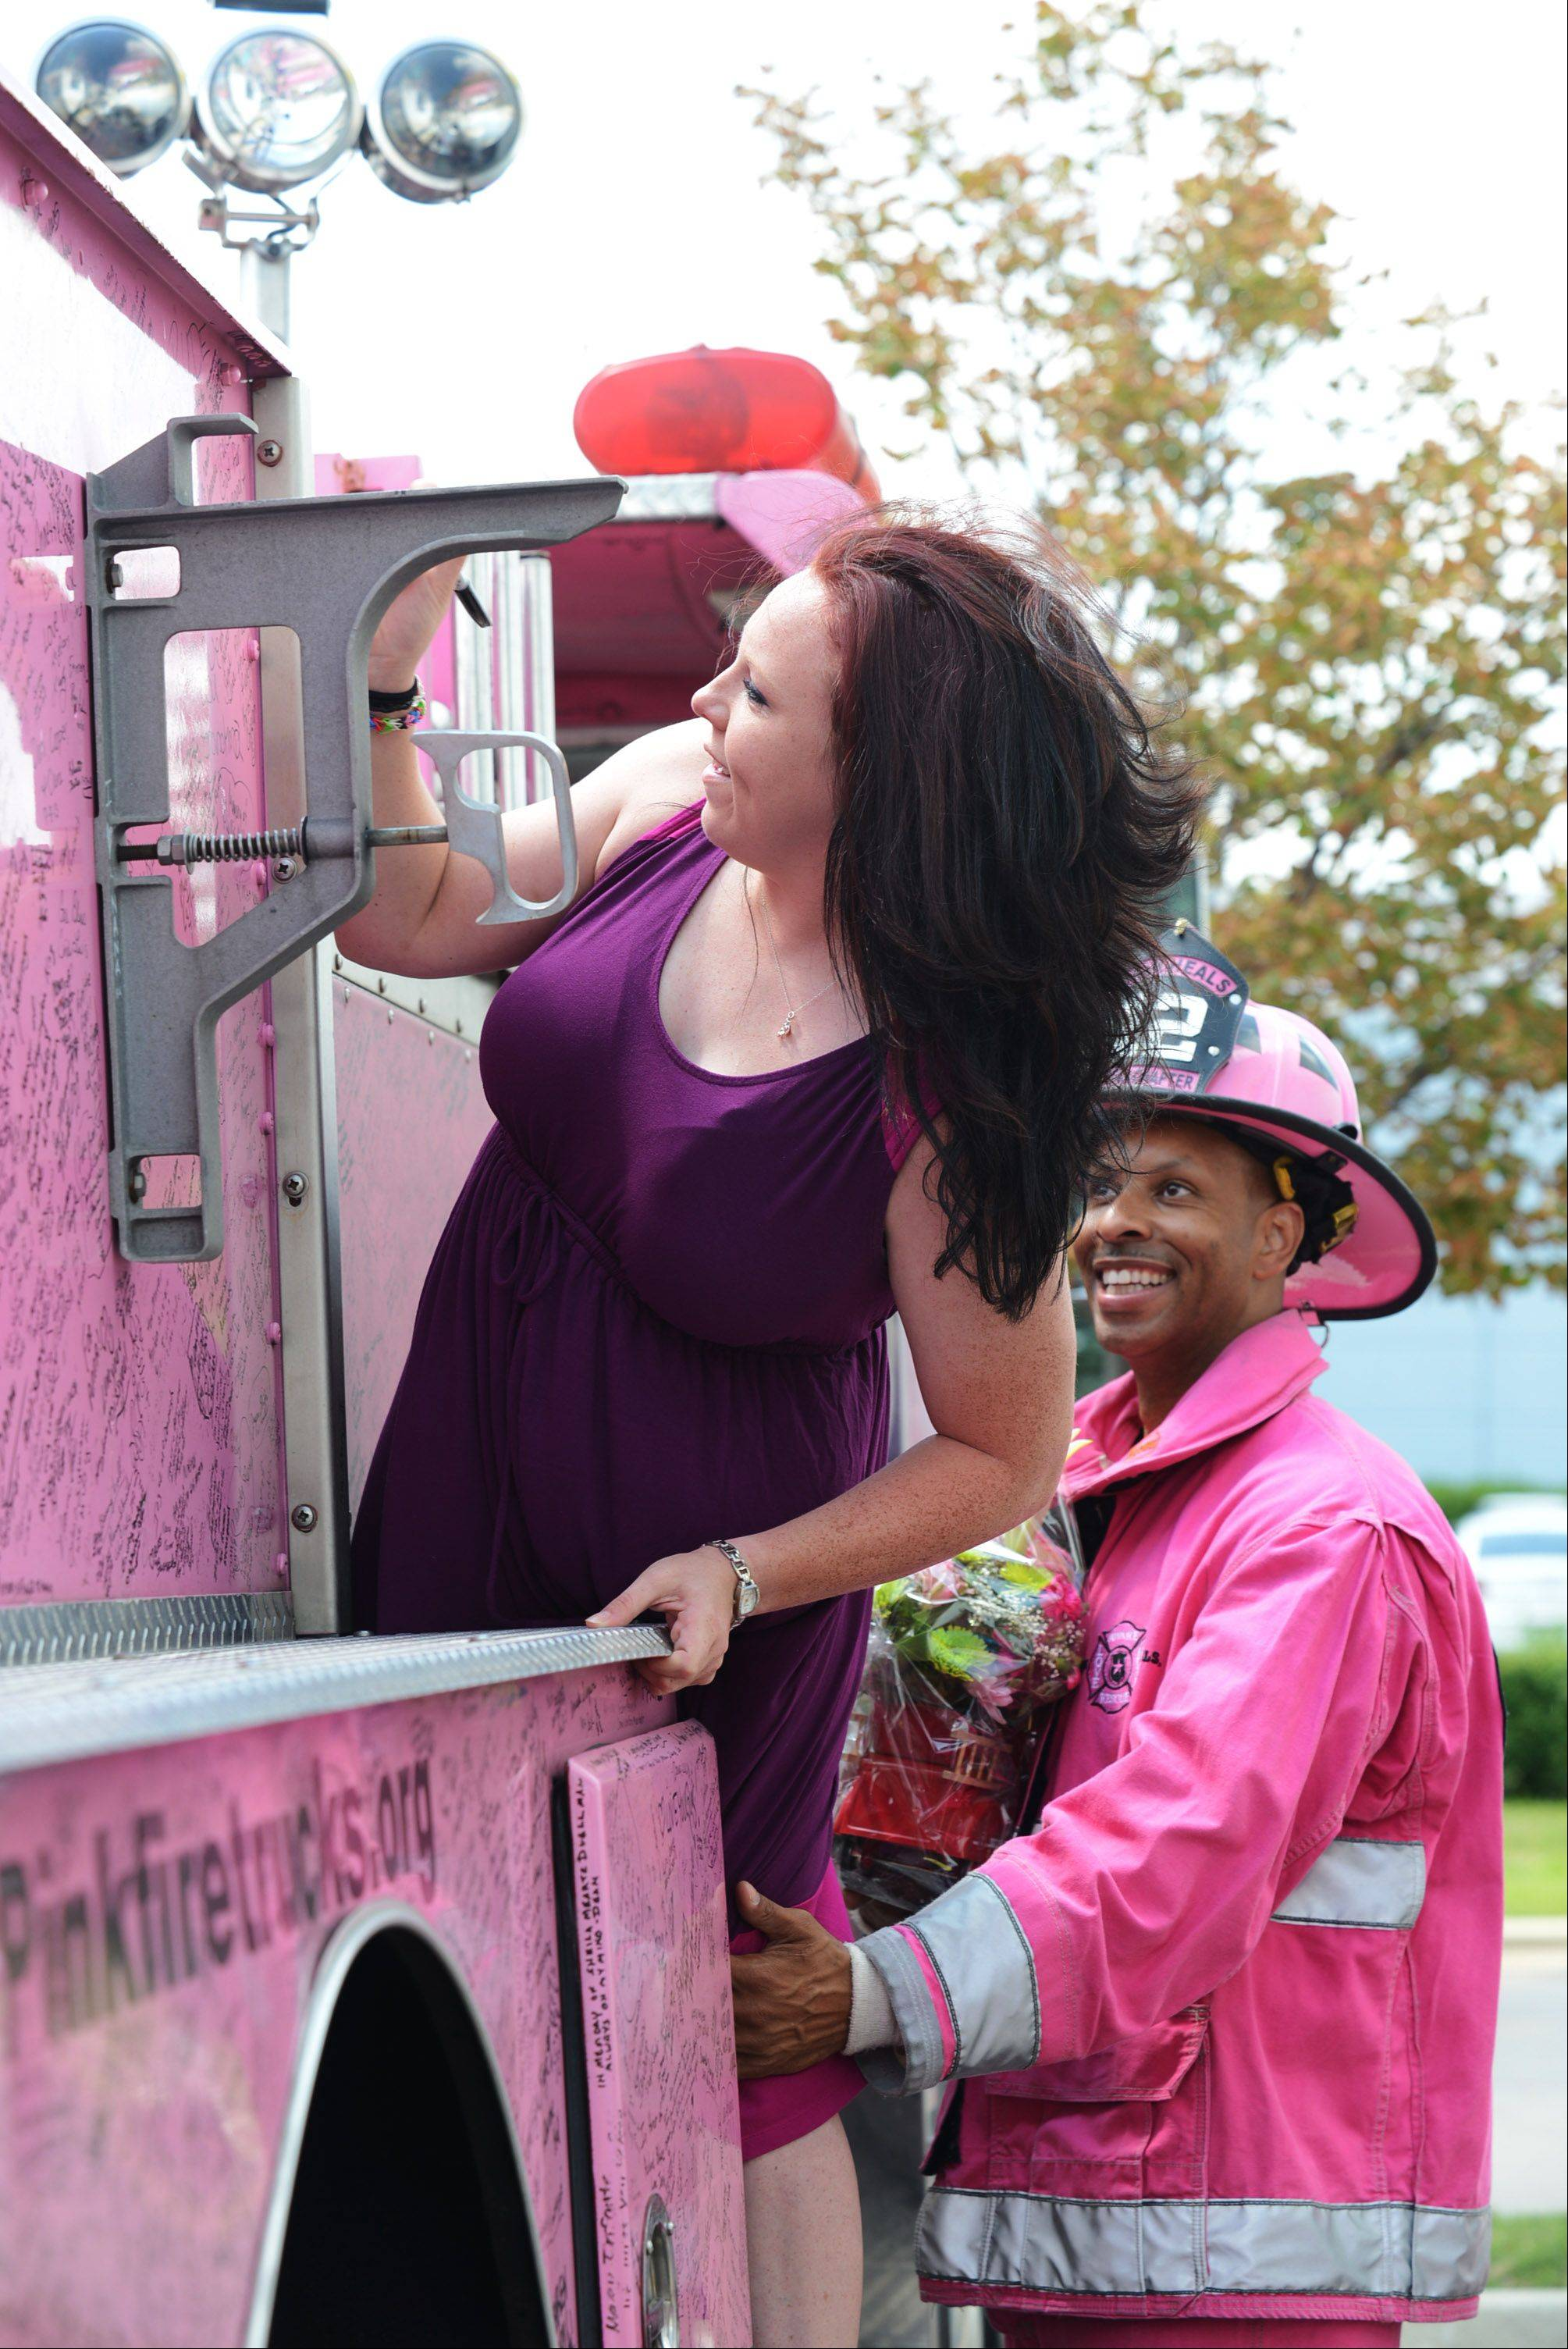 Rebekah Gillette climbs one of the Pink Heals fire trucks in order to find an open space for her signature during the group's visit to Elgin in early August. Firefighter Chuck Goins waits nearby with a helpful hand. The nationwide breast cancer awareness group stopped at the Spring Hill Gymnastics in West Dundee in support of some of their employees who have and are fighting cancer.